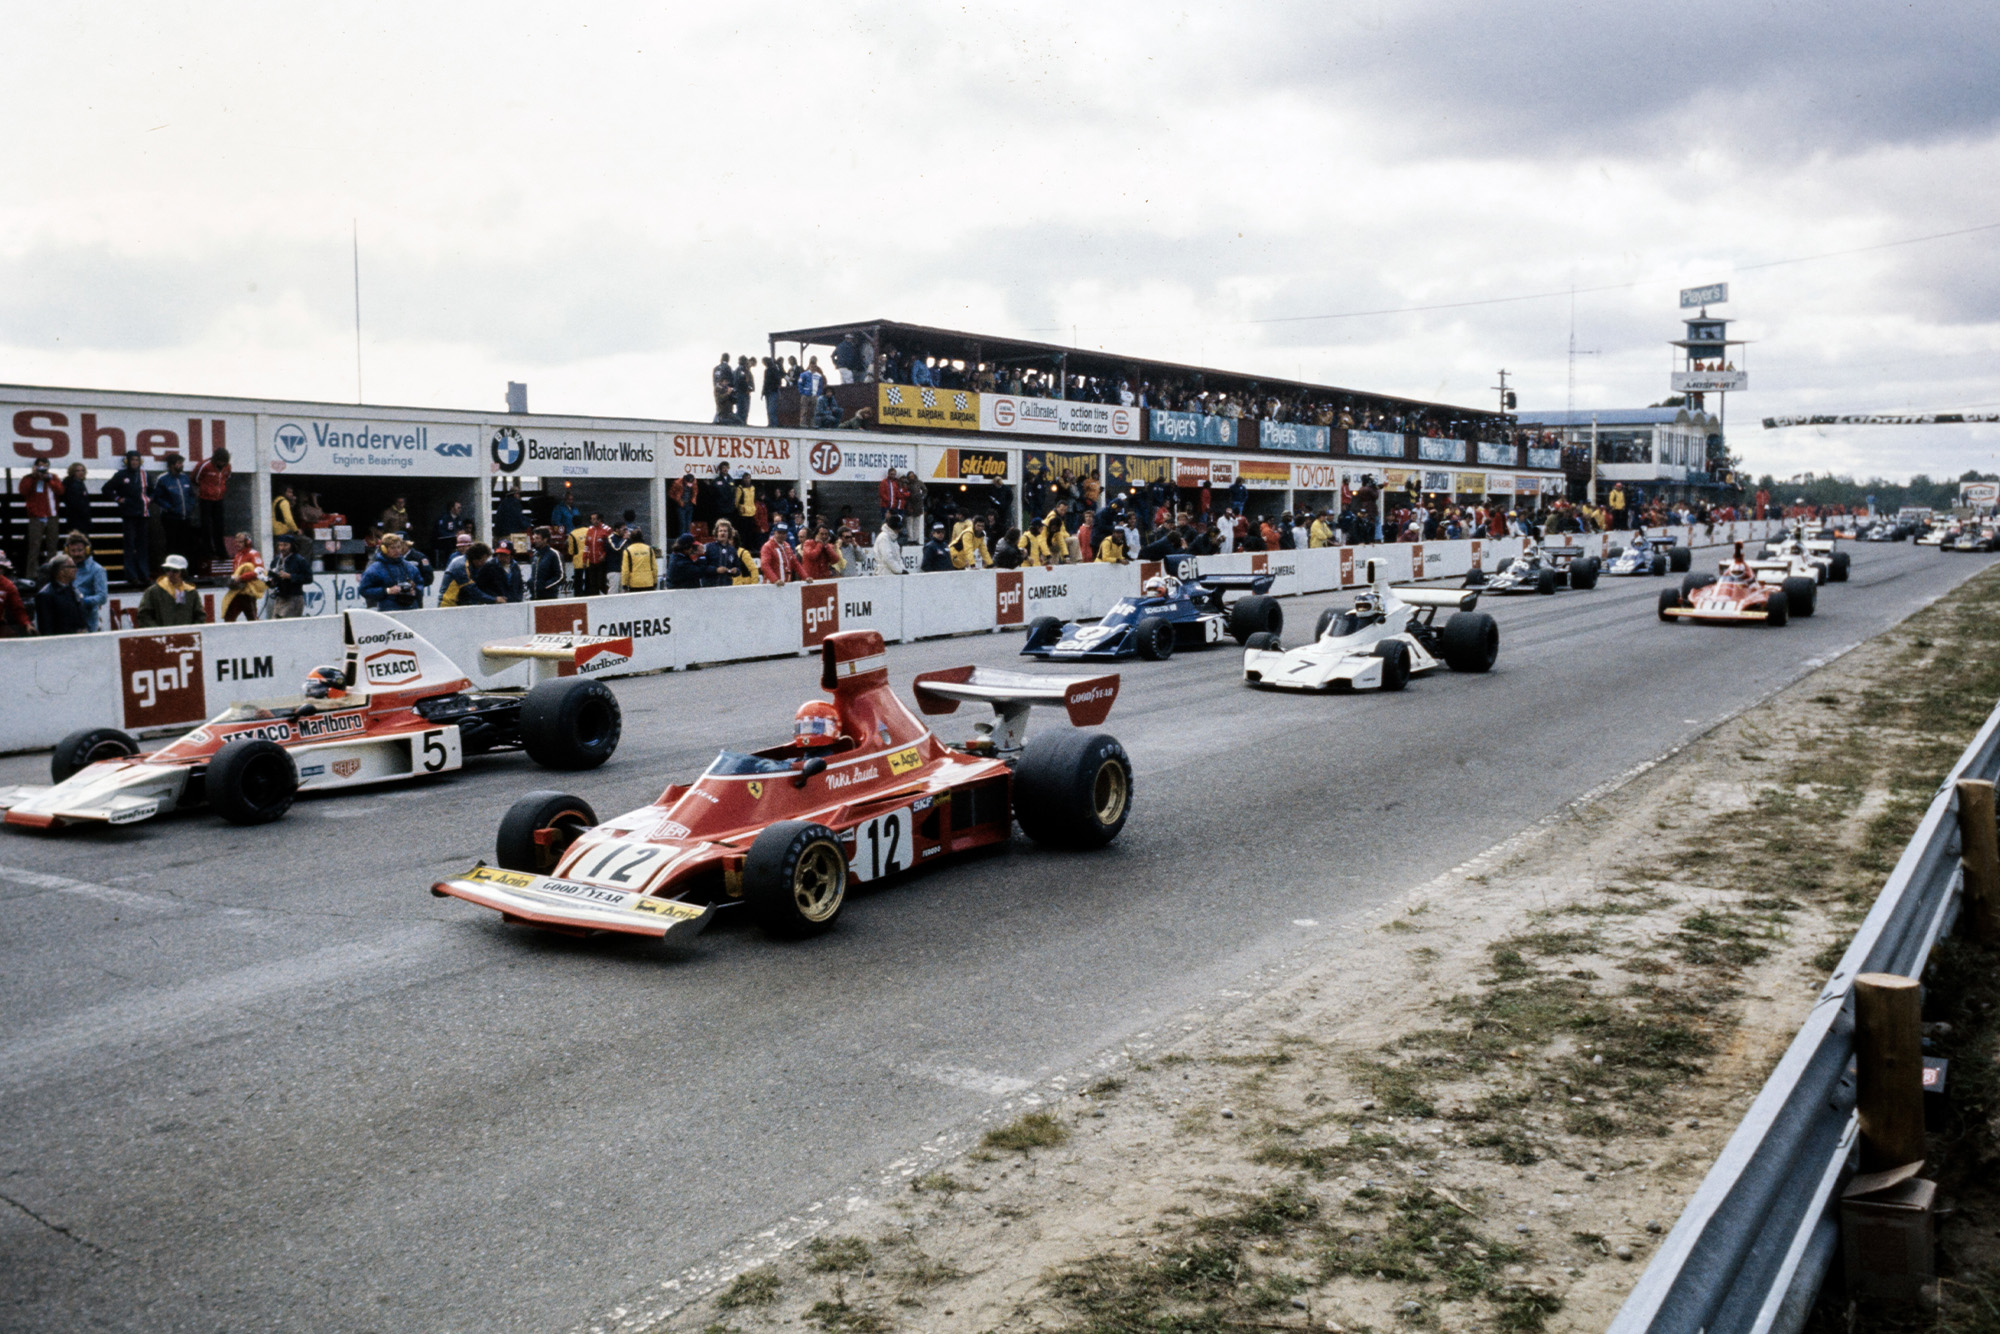 The cars speed off the grid at the 1974 Canadian Grand Prix, Mosport.